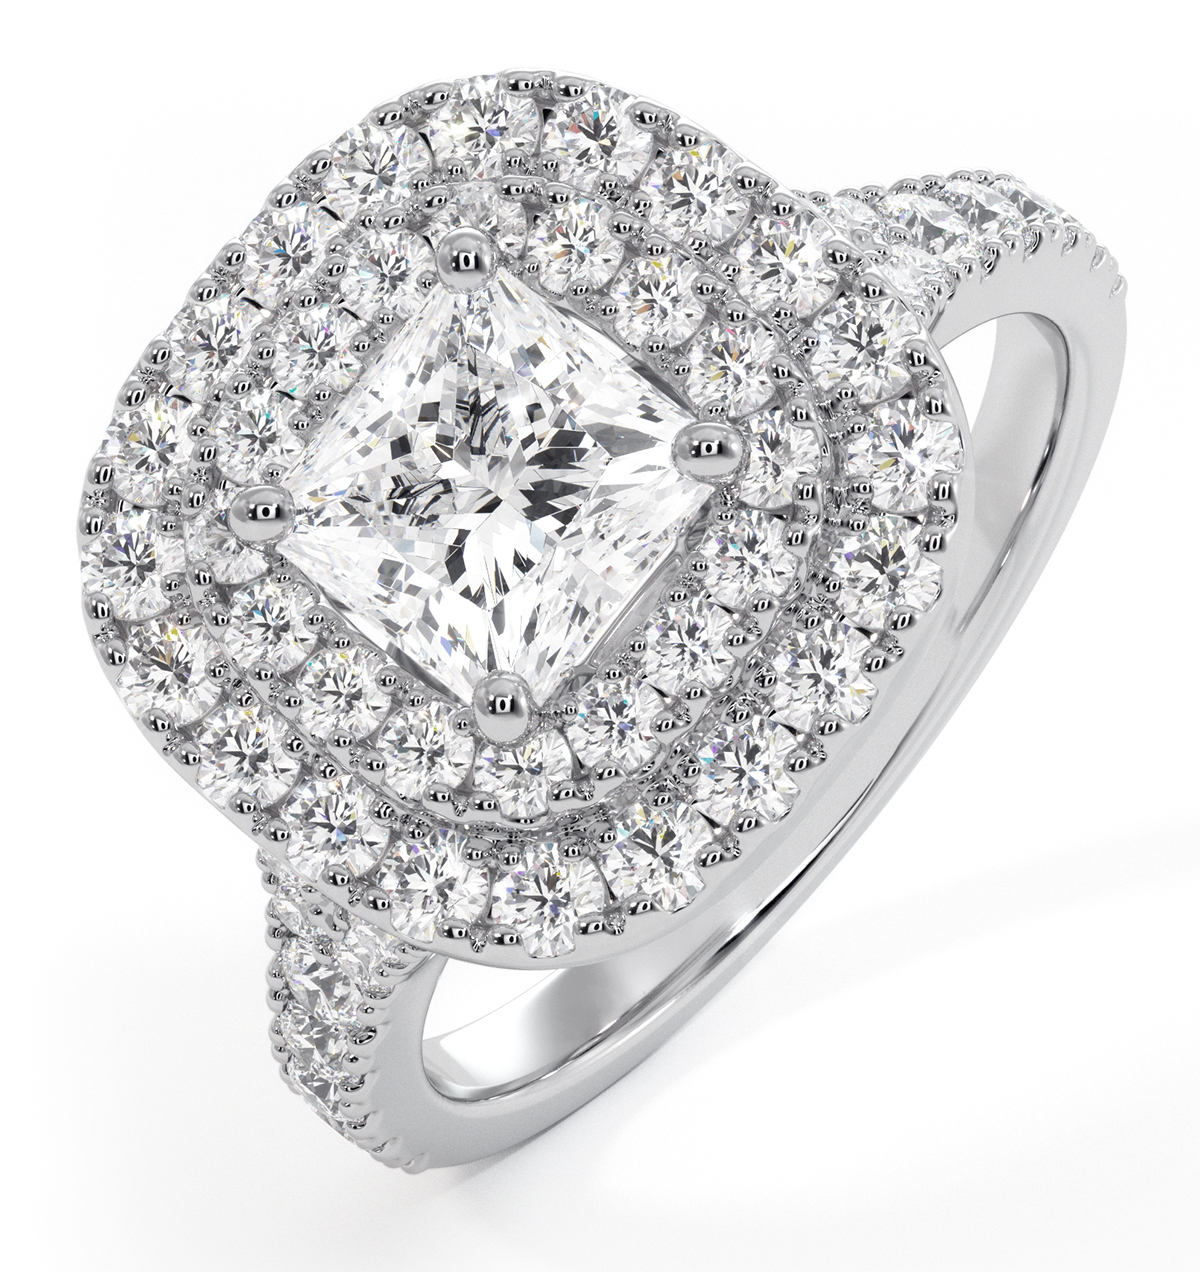 Cleopatra GIA Diamond Halo Engagement Ring in Platinum 1.70ct G/SI2 - image 1